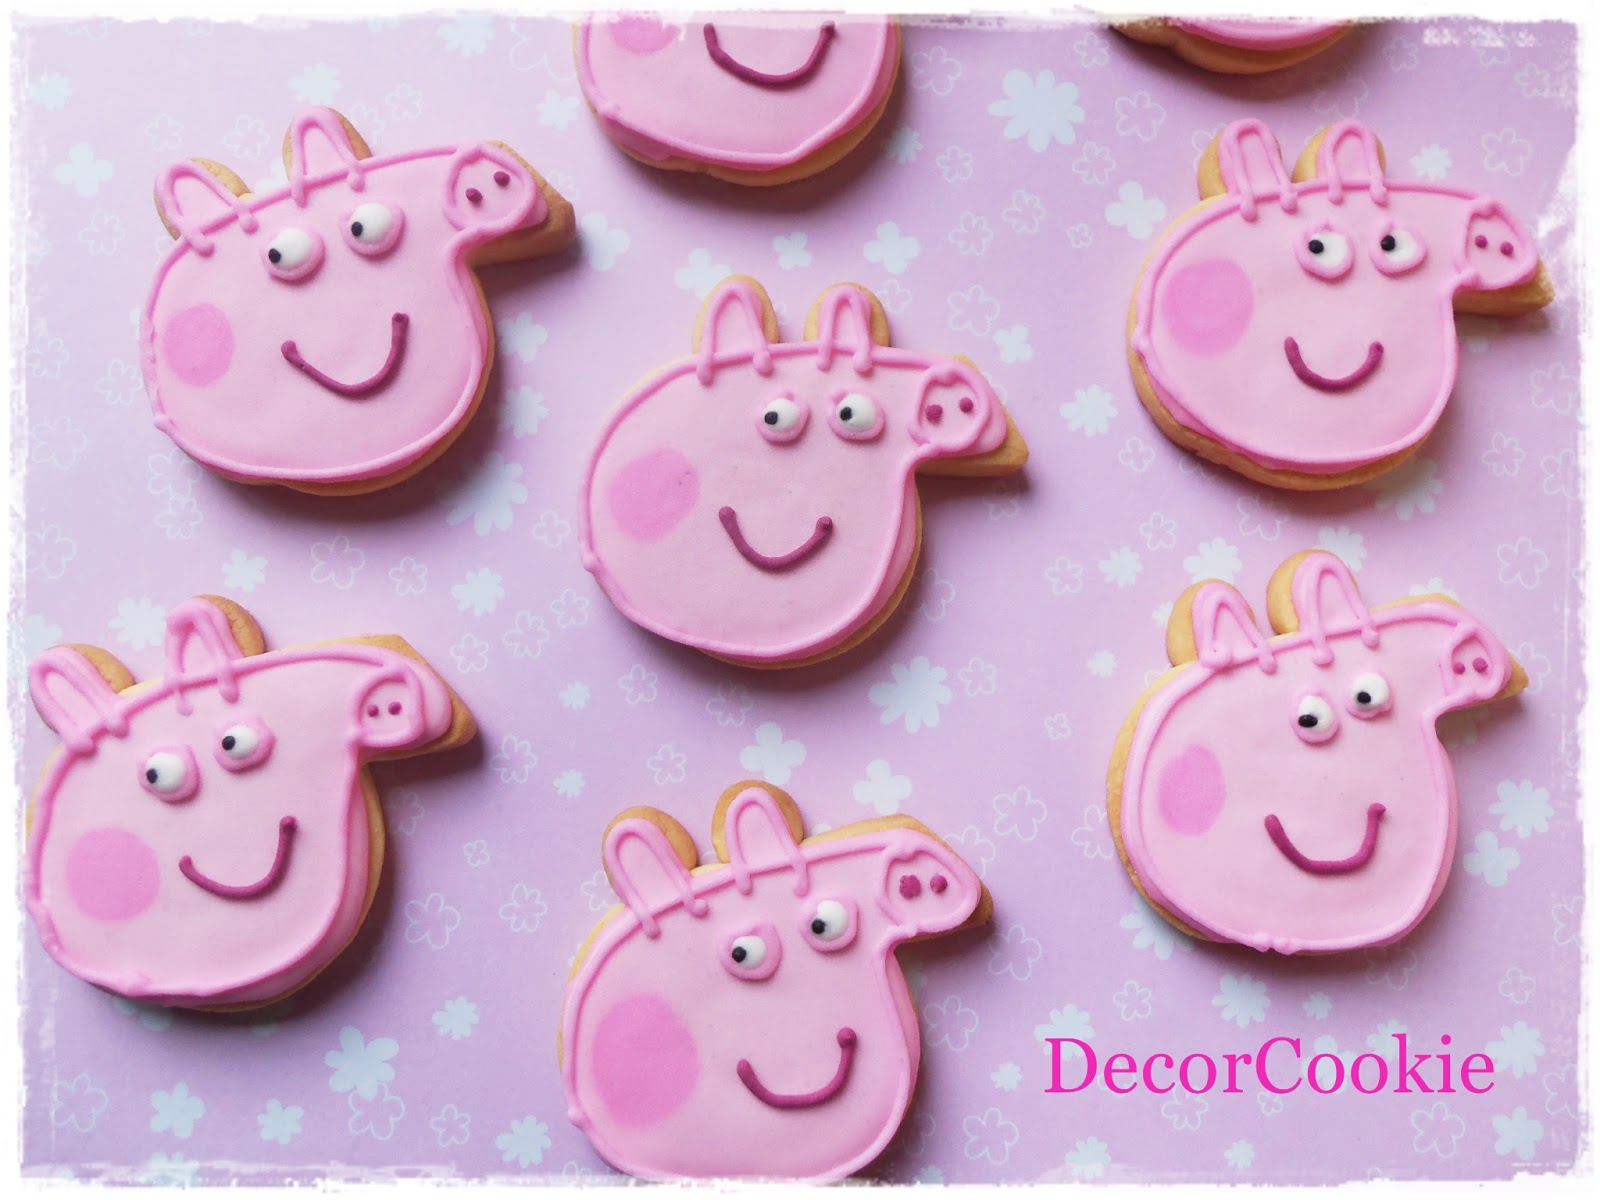 Galletas Decoradas Decorcookie Infantiles